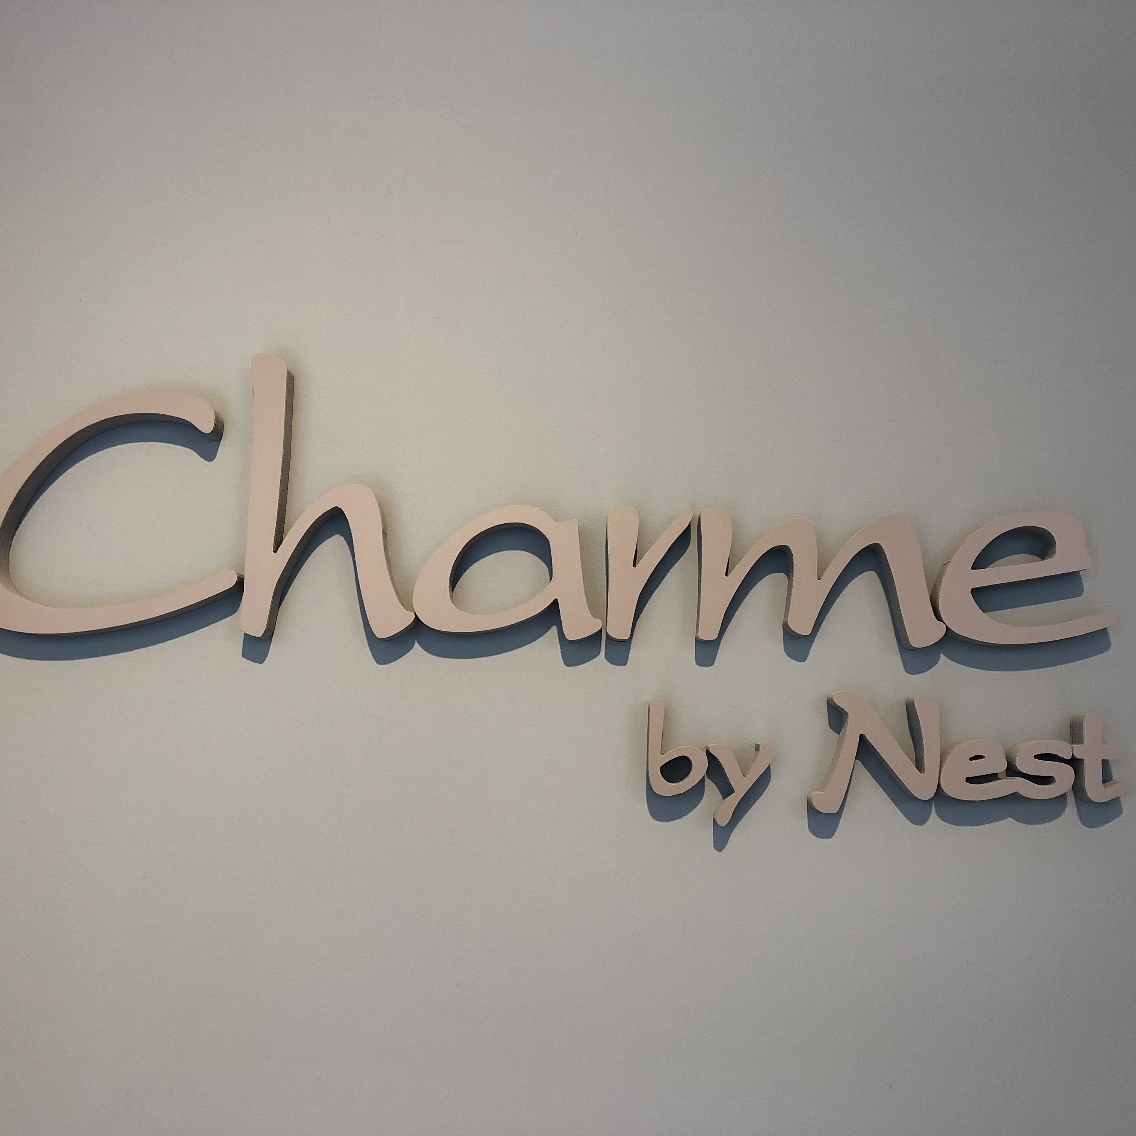 Charme by Nest